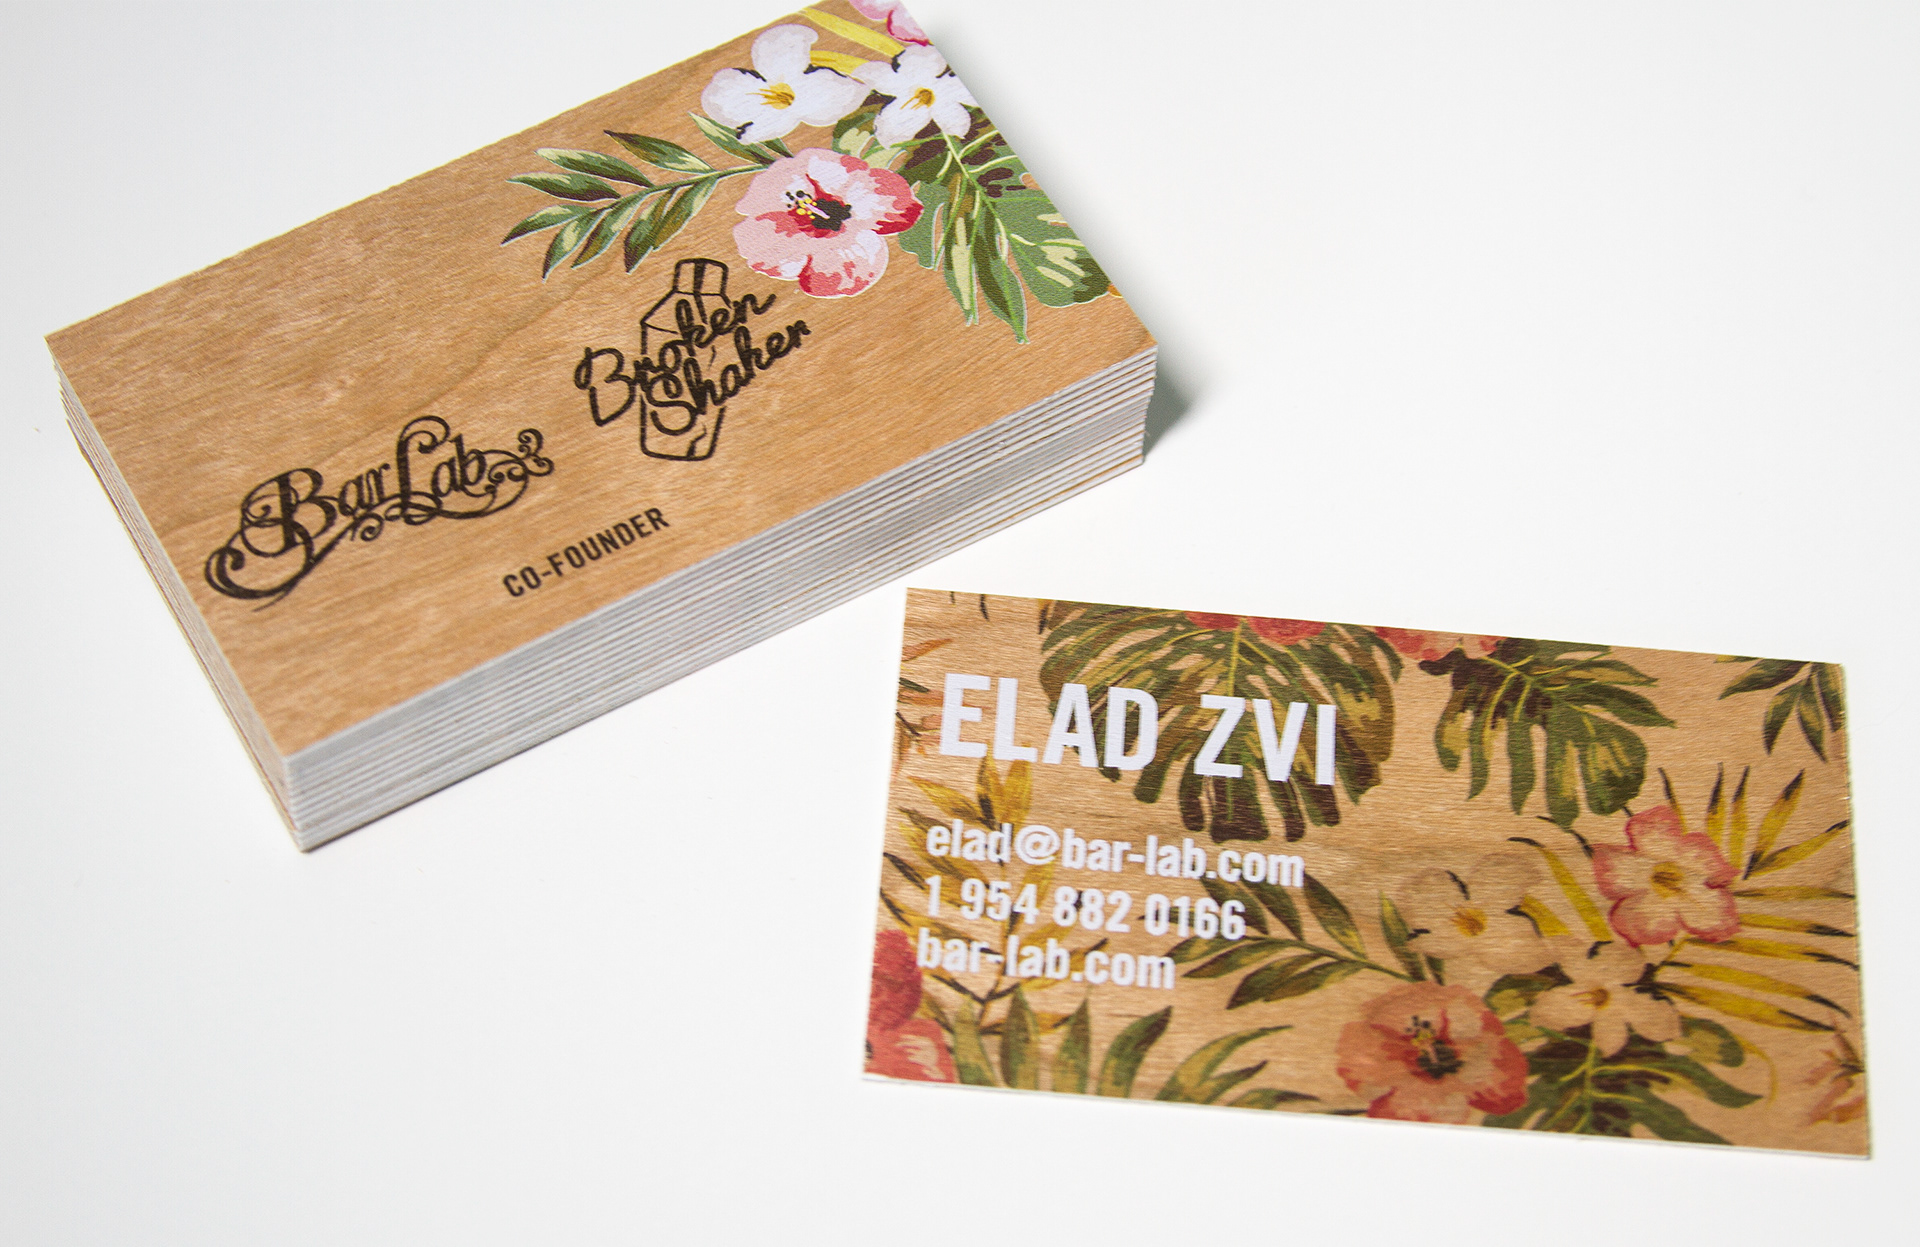 Experiential events brand activation 360 campaigns digital business cards printed on wood using white ink overlay and underlay double mounted reheart Choice Image